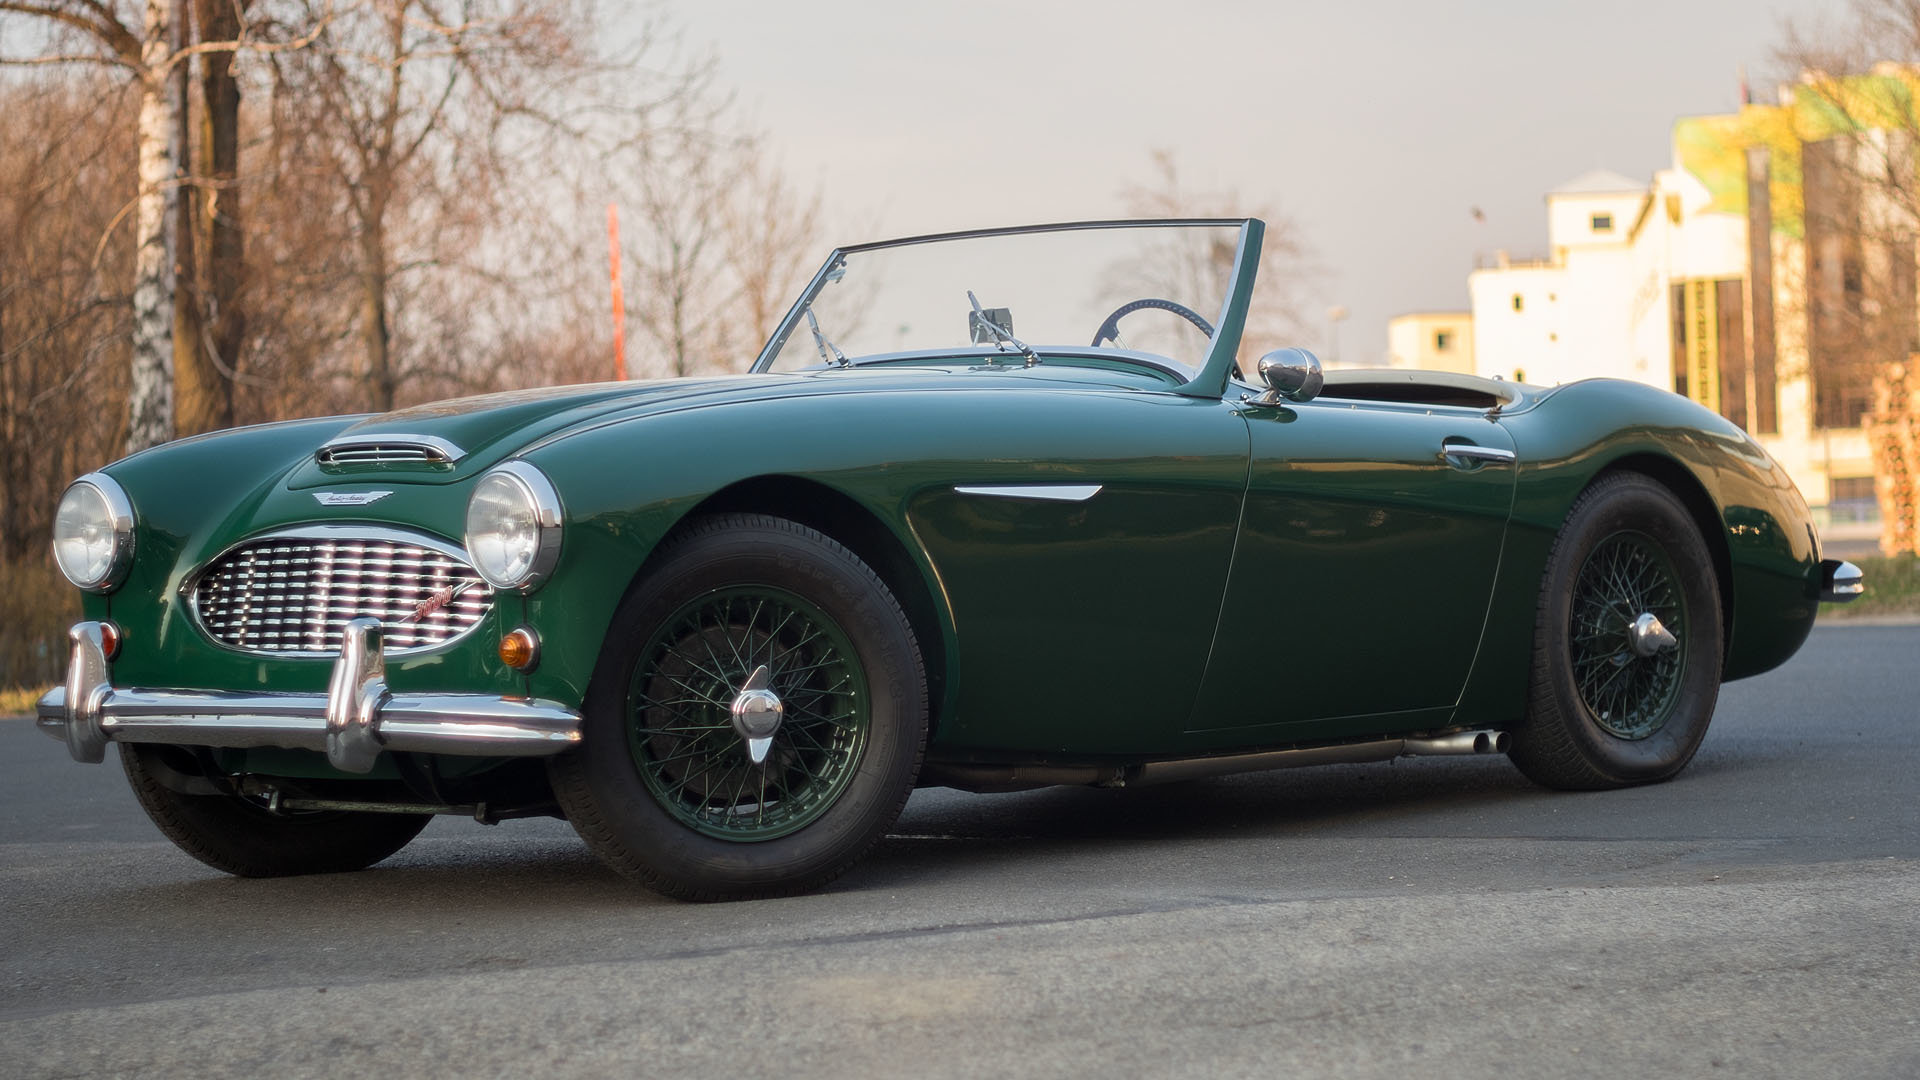 Austin Healey BN7 1959, frame-off renovation For Sale (picture 1 of 6)